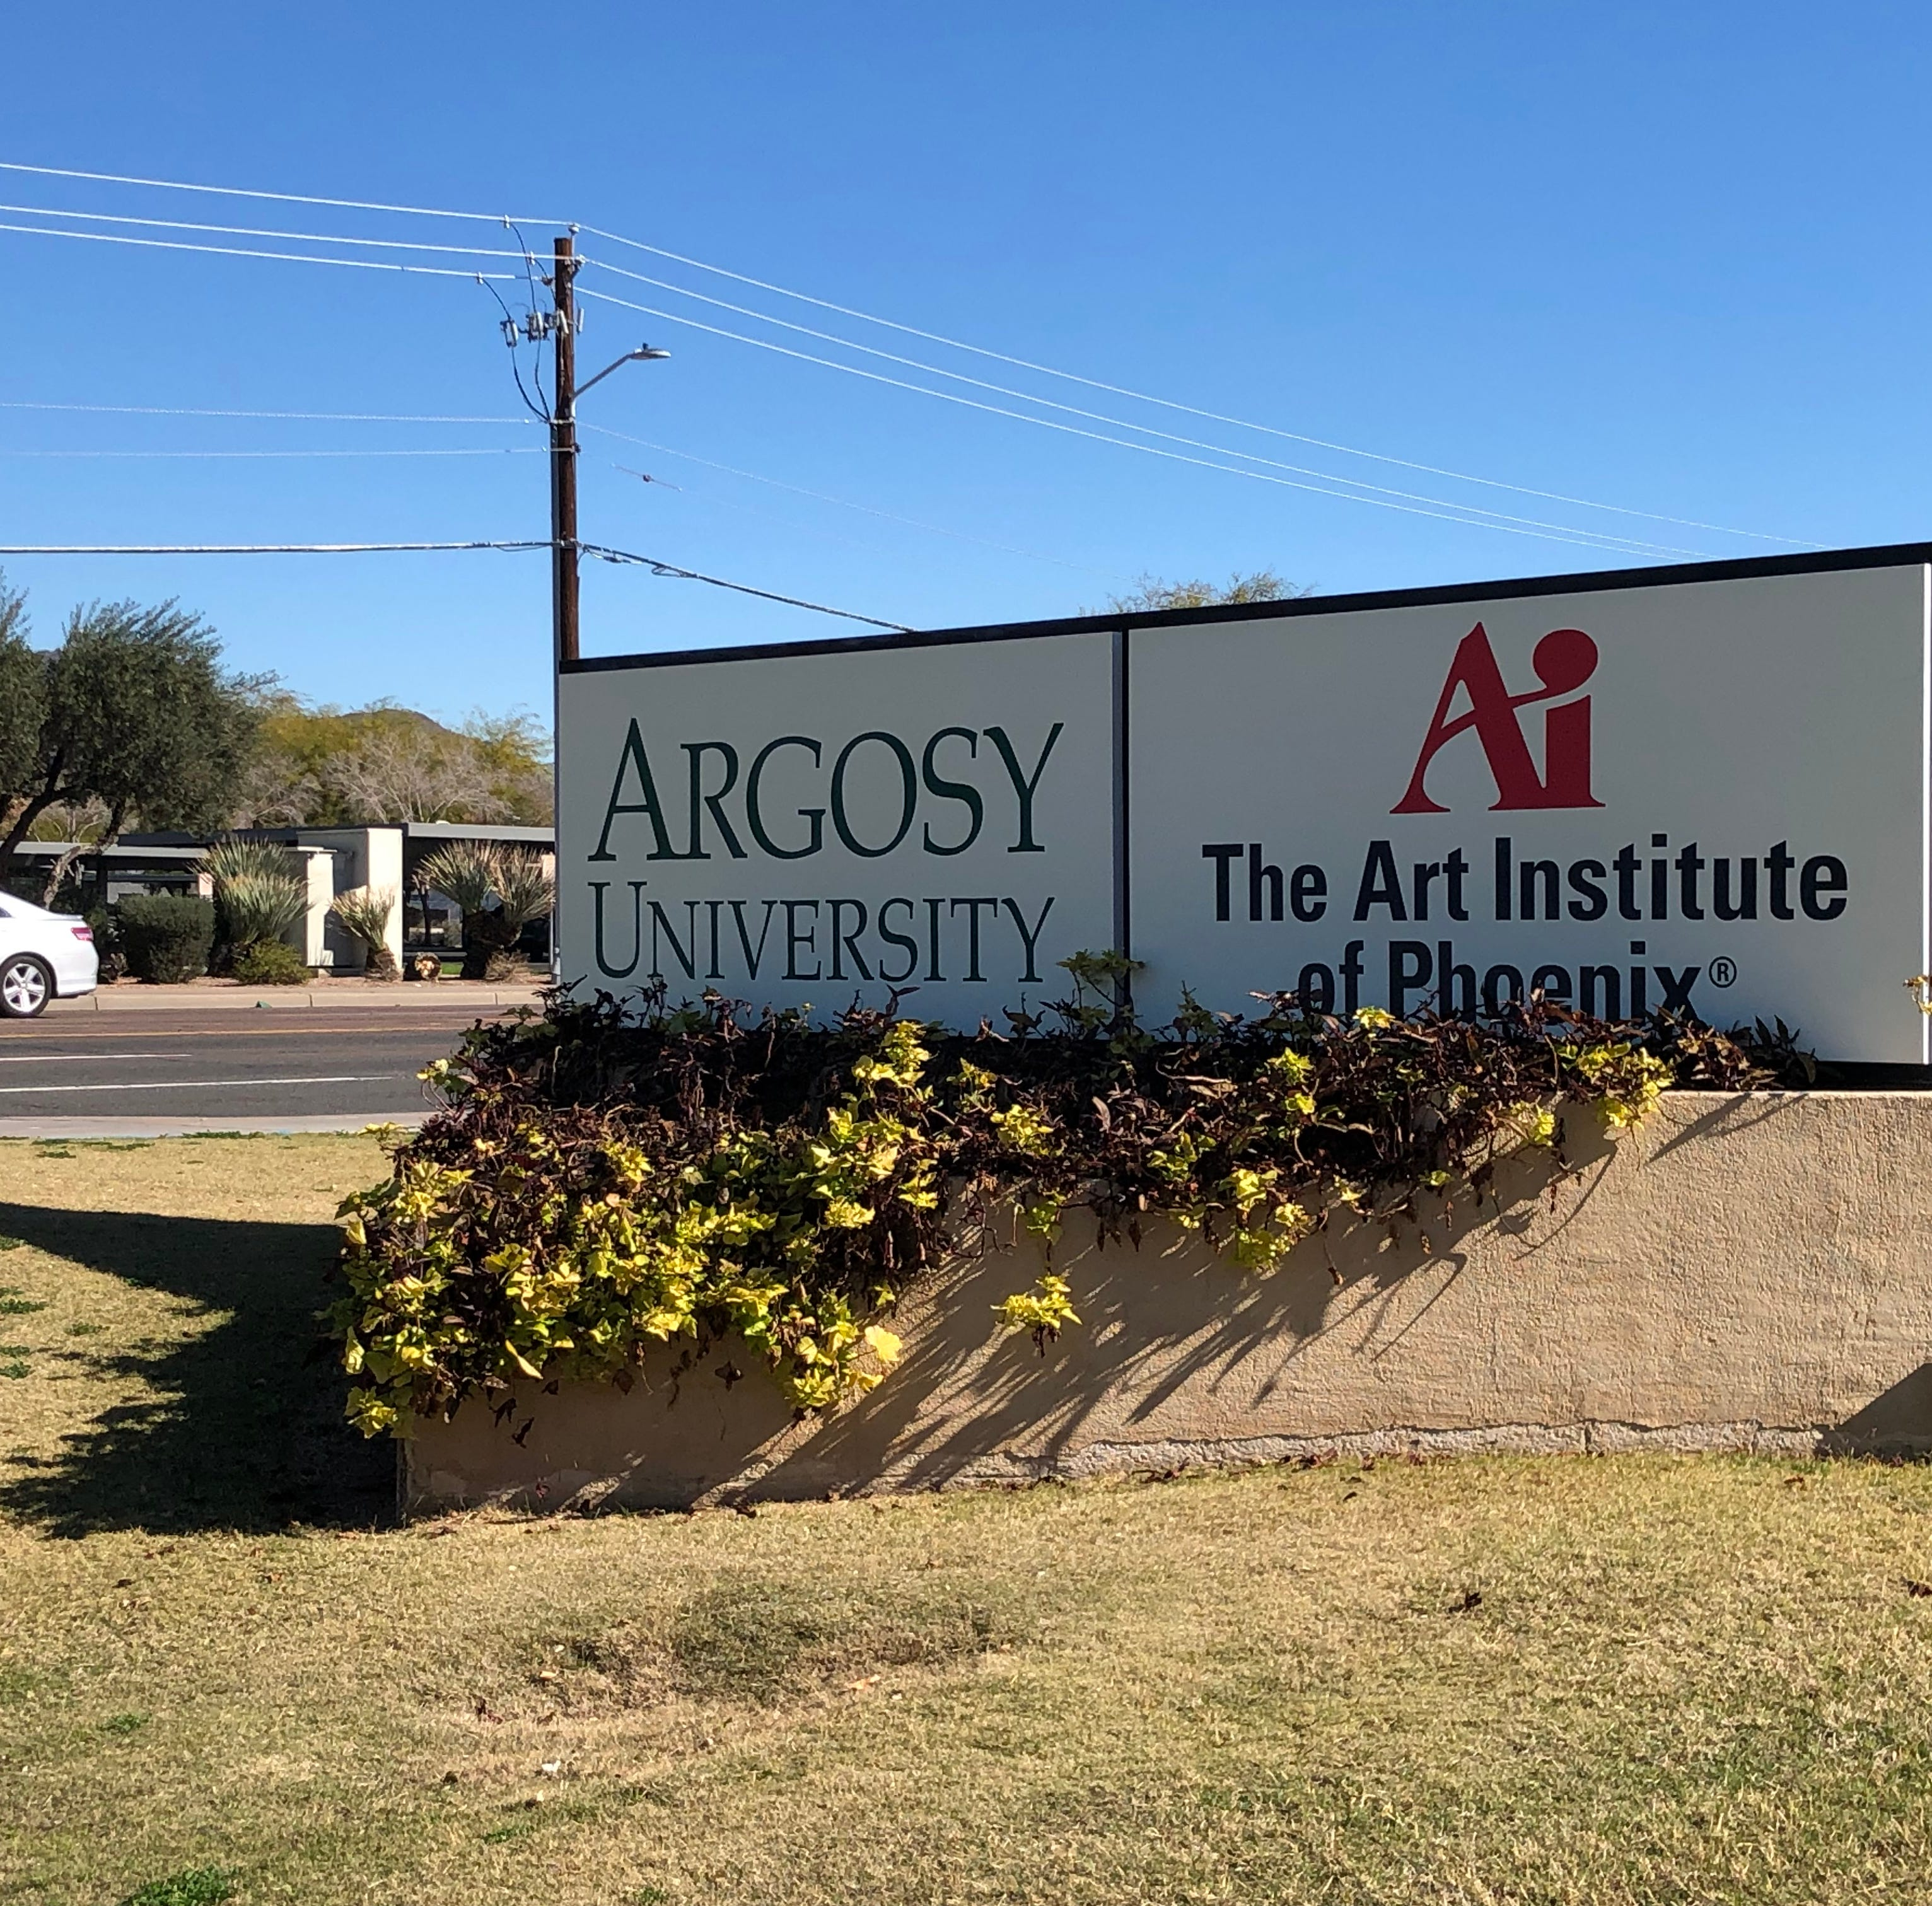 Argosy University could lose all federal financial aid, U.S. Dept. of Education warns